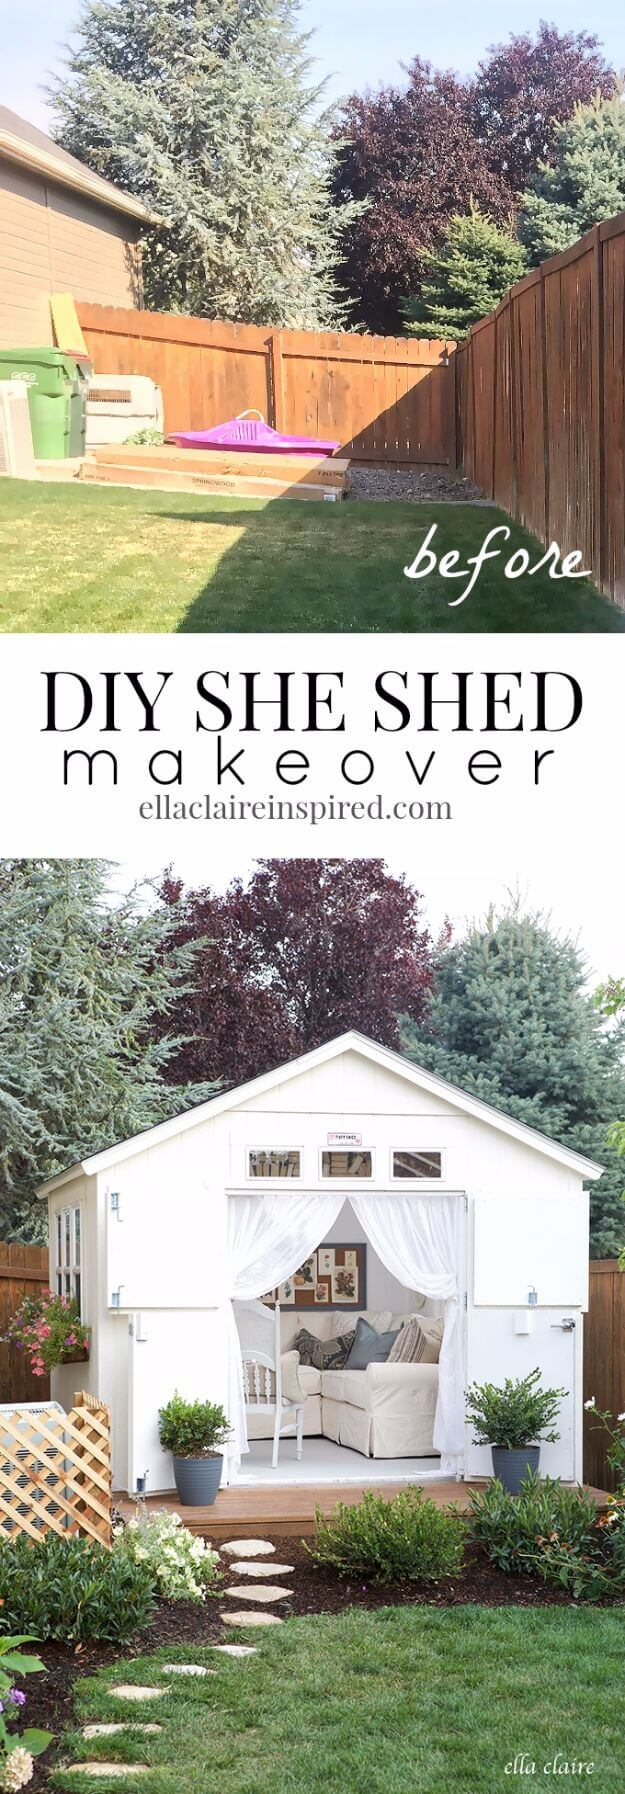 DIY SHE Shed Makeover